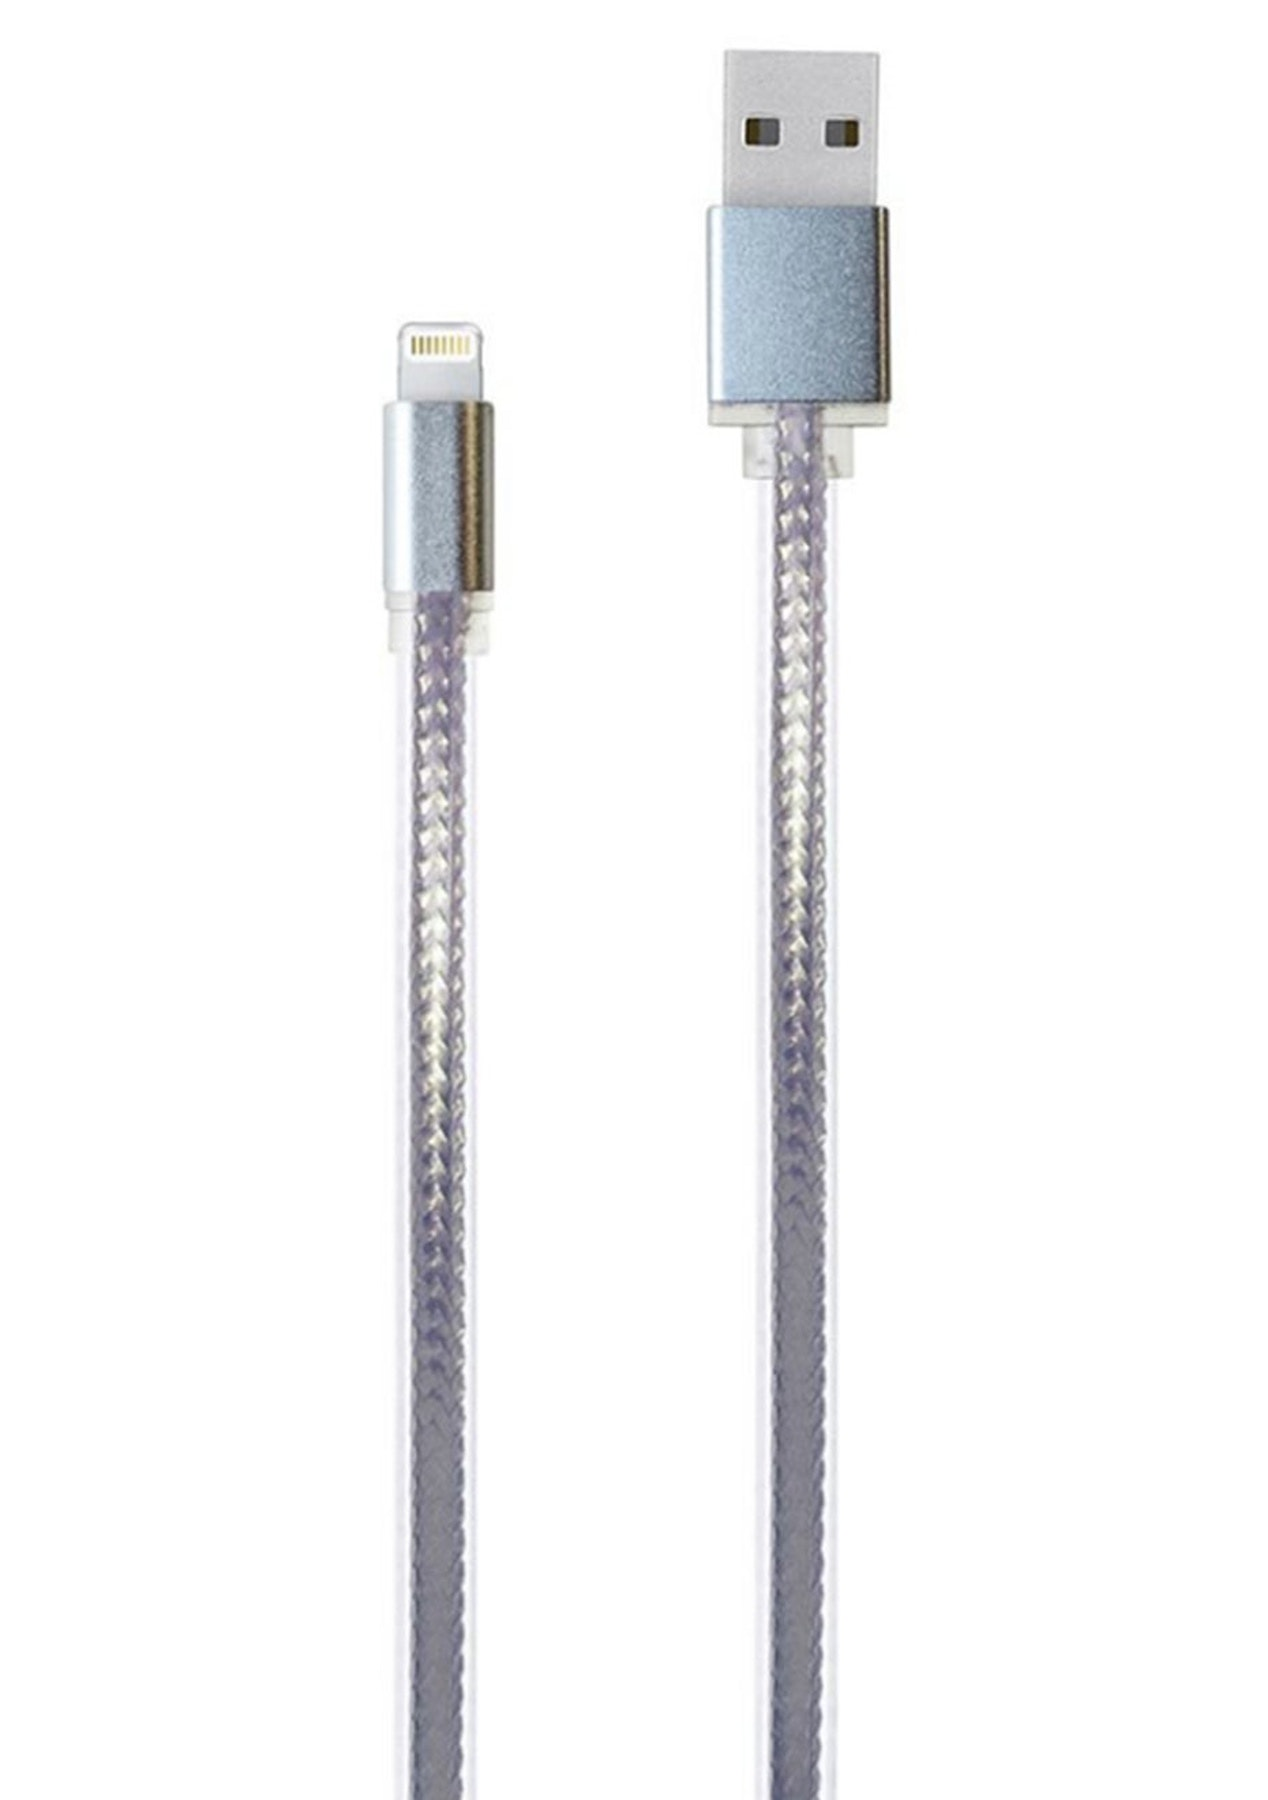 Charged - 2m Metallic USB Charging Cable - Iphone (Silver)